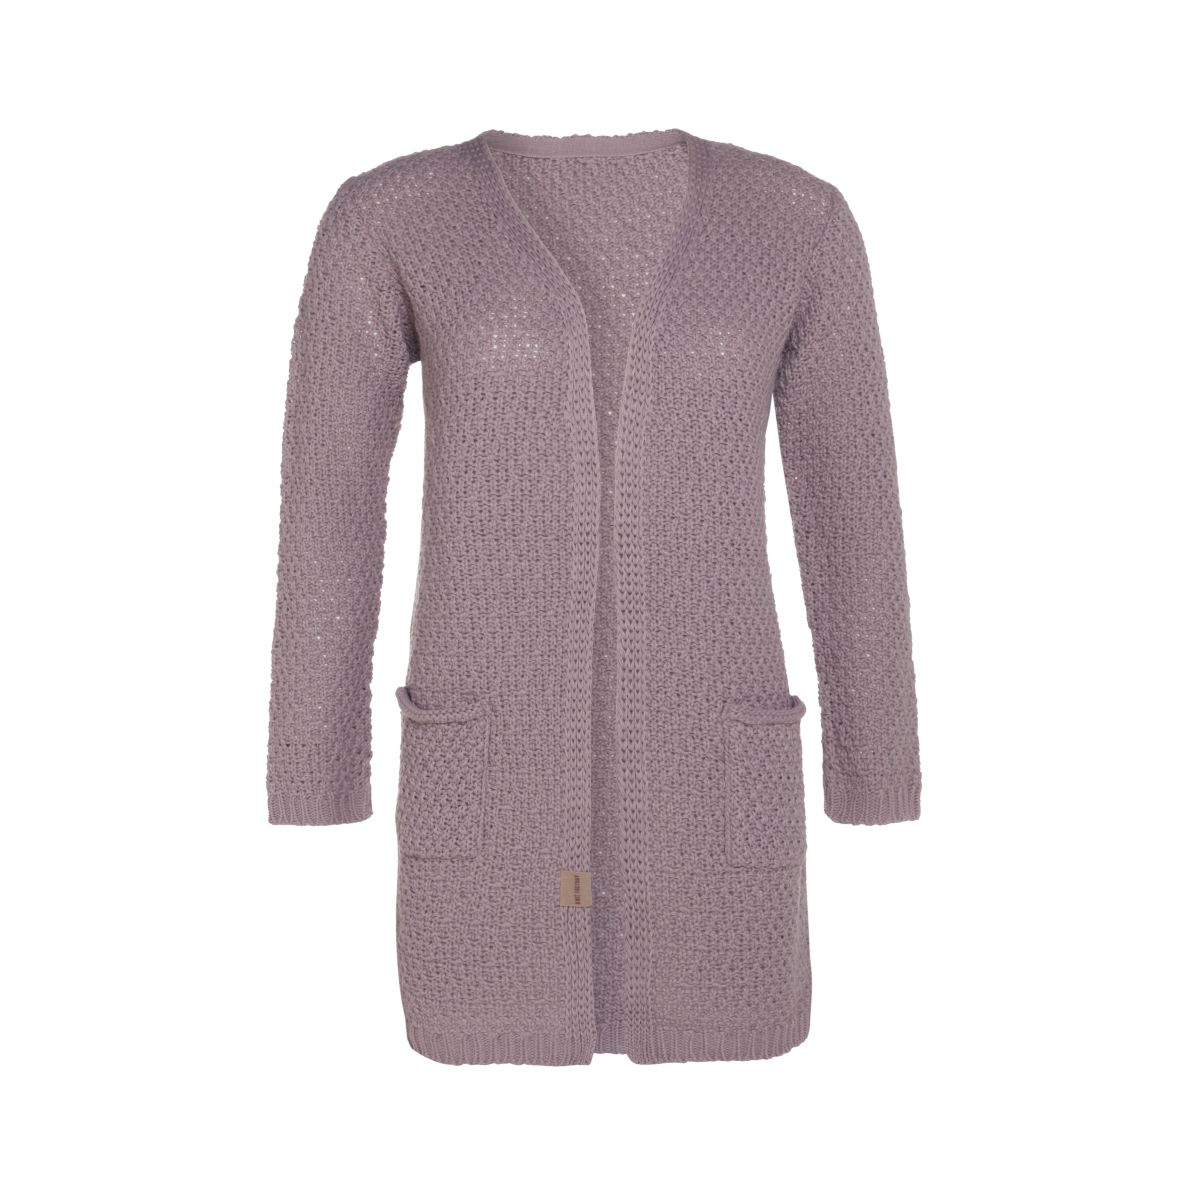 luna knitted cardigan mauve 3638 with side pockets